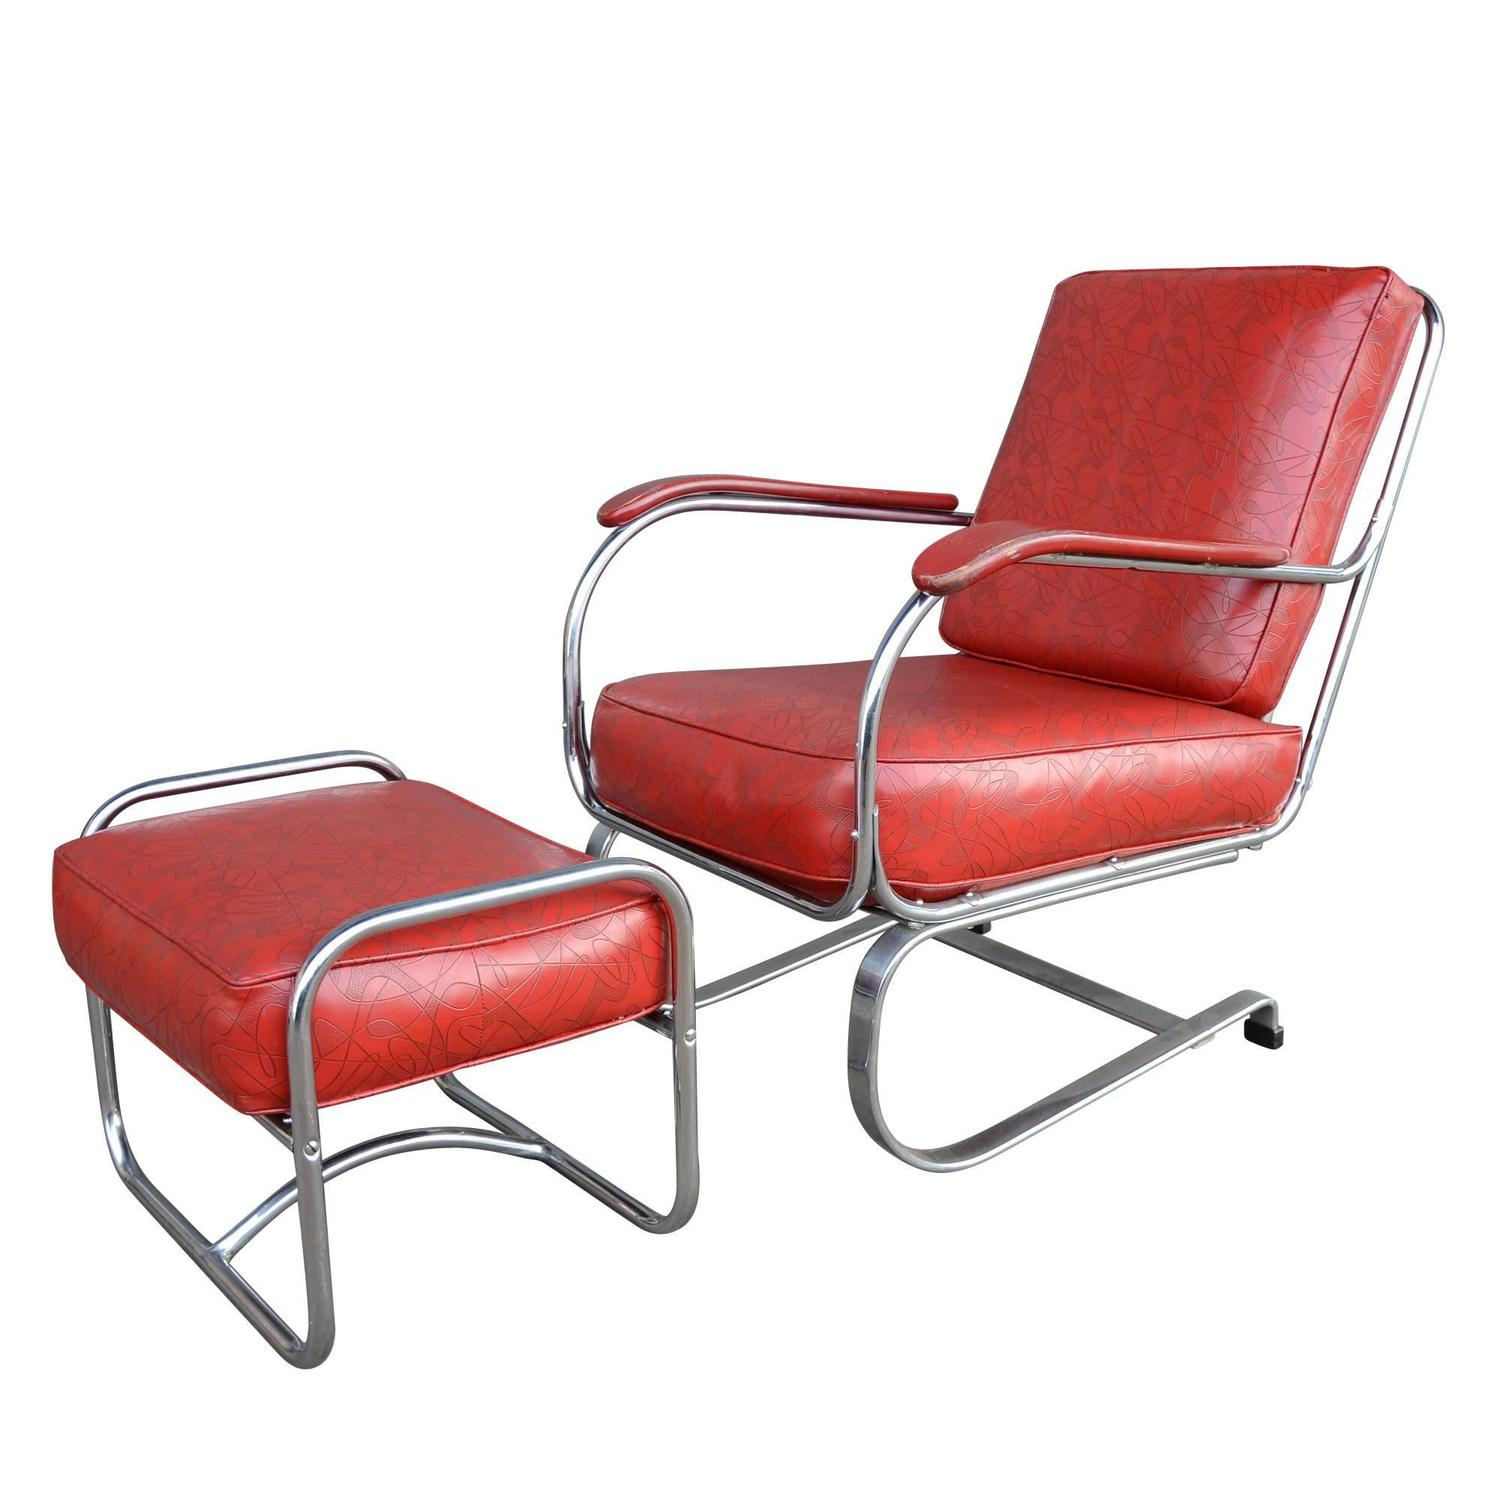 Incredible Red Vinyl Lounge Chair With Ottoman Circa 1940